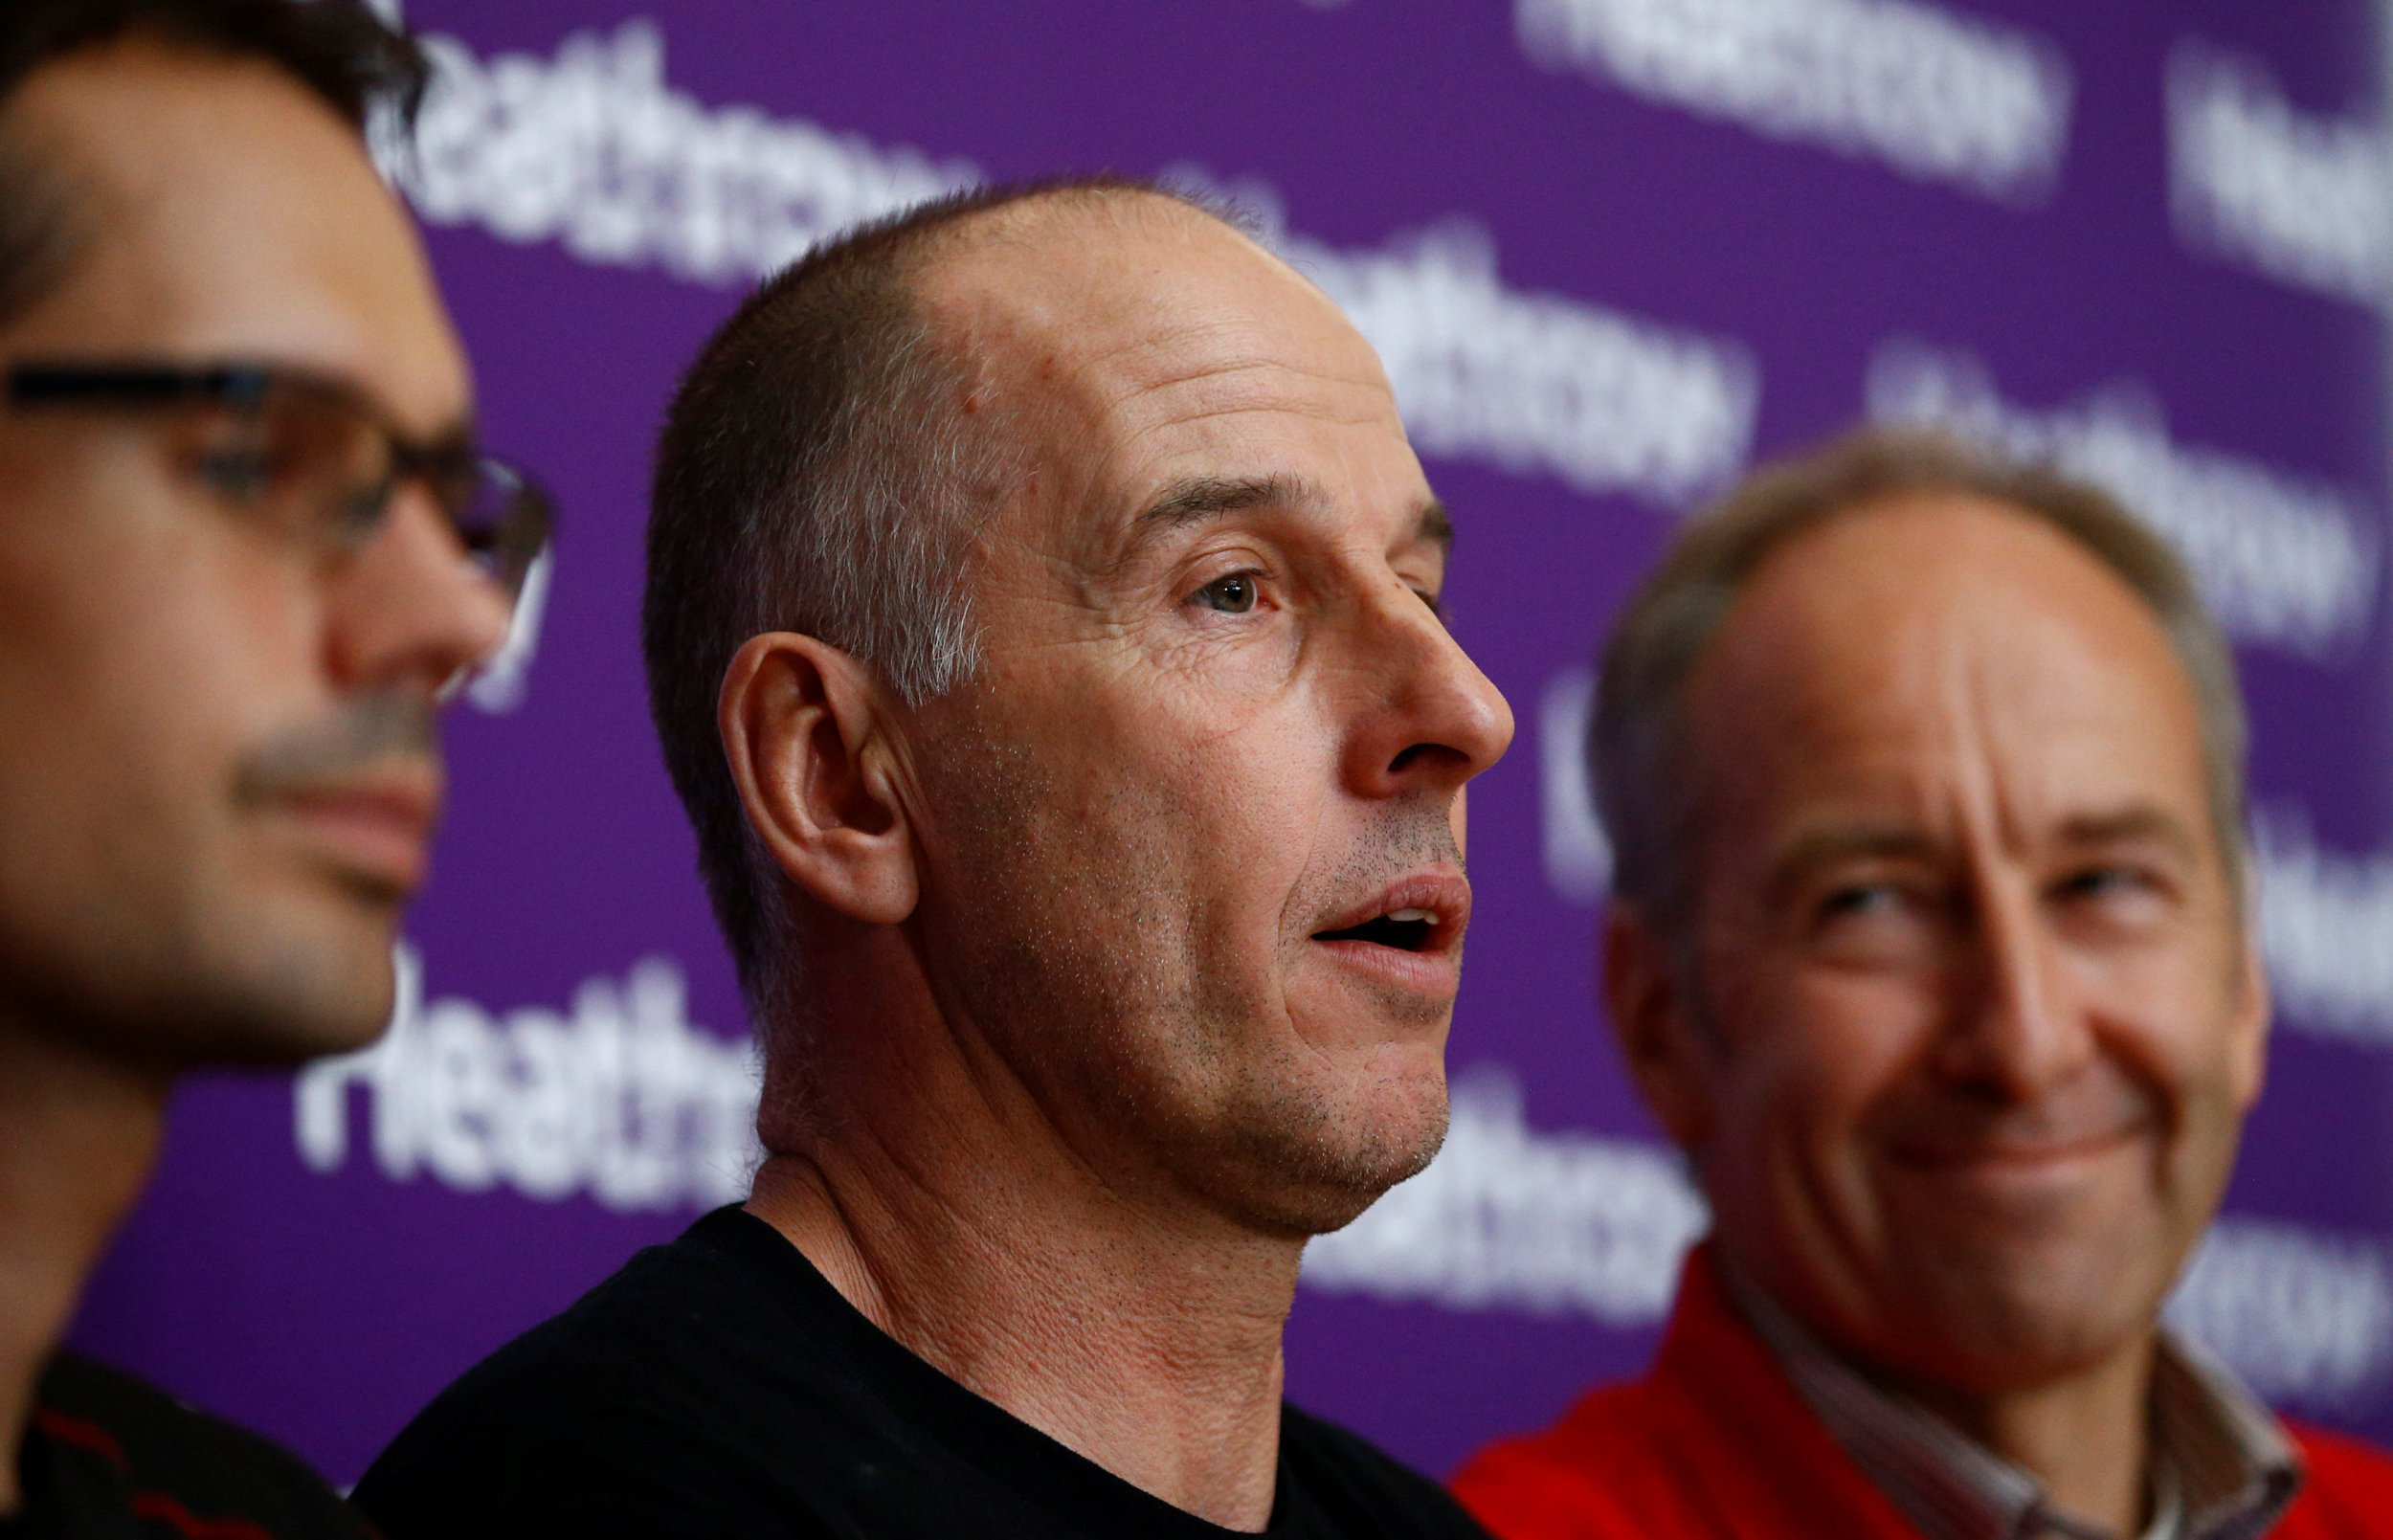 British cave divers, Rick Stanton, Chris Jewell, and Chairman of the British Cave Rescue Council Peter Dennis speak to the media at a news conference at Heathrow Airport, having helped in the rescue of the 12 boys in Thailand, in London, Britain, July 13, 2018. REUTERS/Henry Nicholls